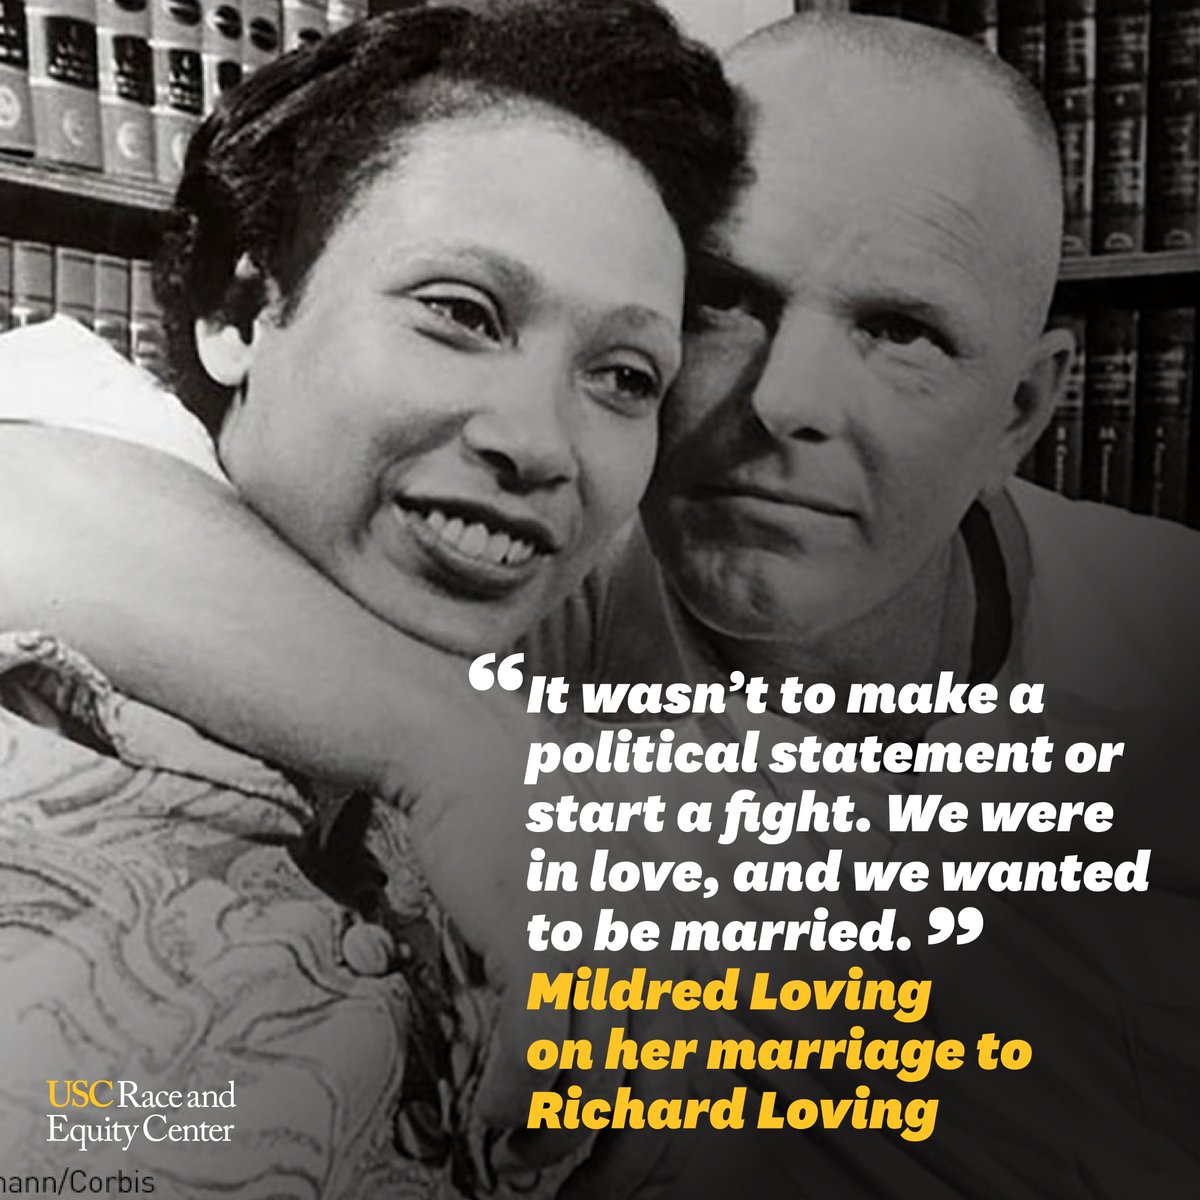 Apologise, against interracial marriage something